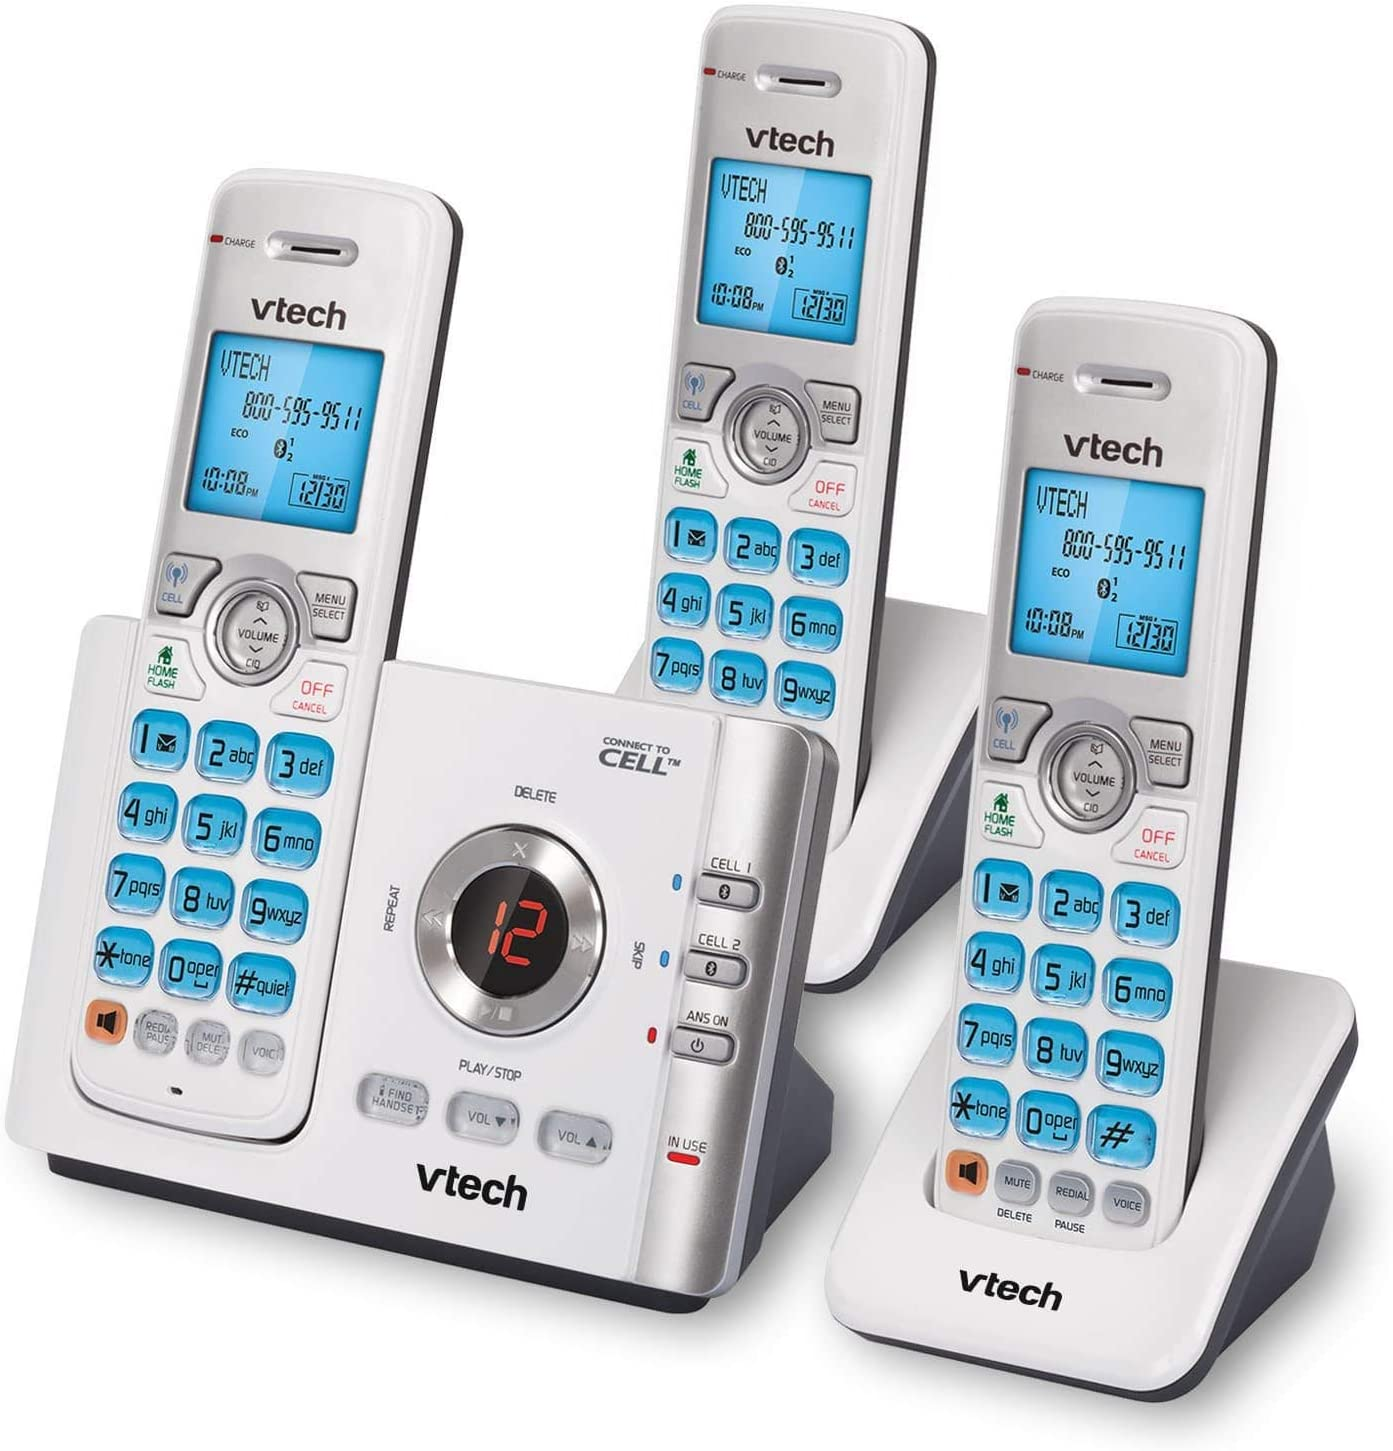 Vtech Cordless Phone with 3 Handset and Answering System, Caller ID, Call Waiting and Connect to Cell